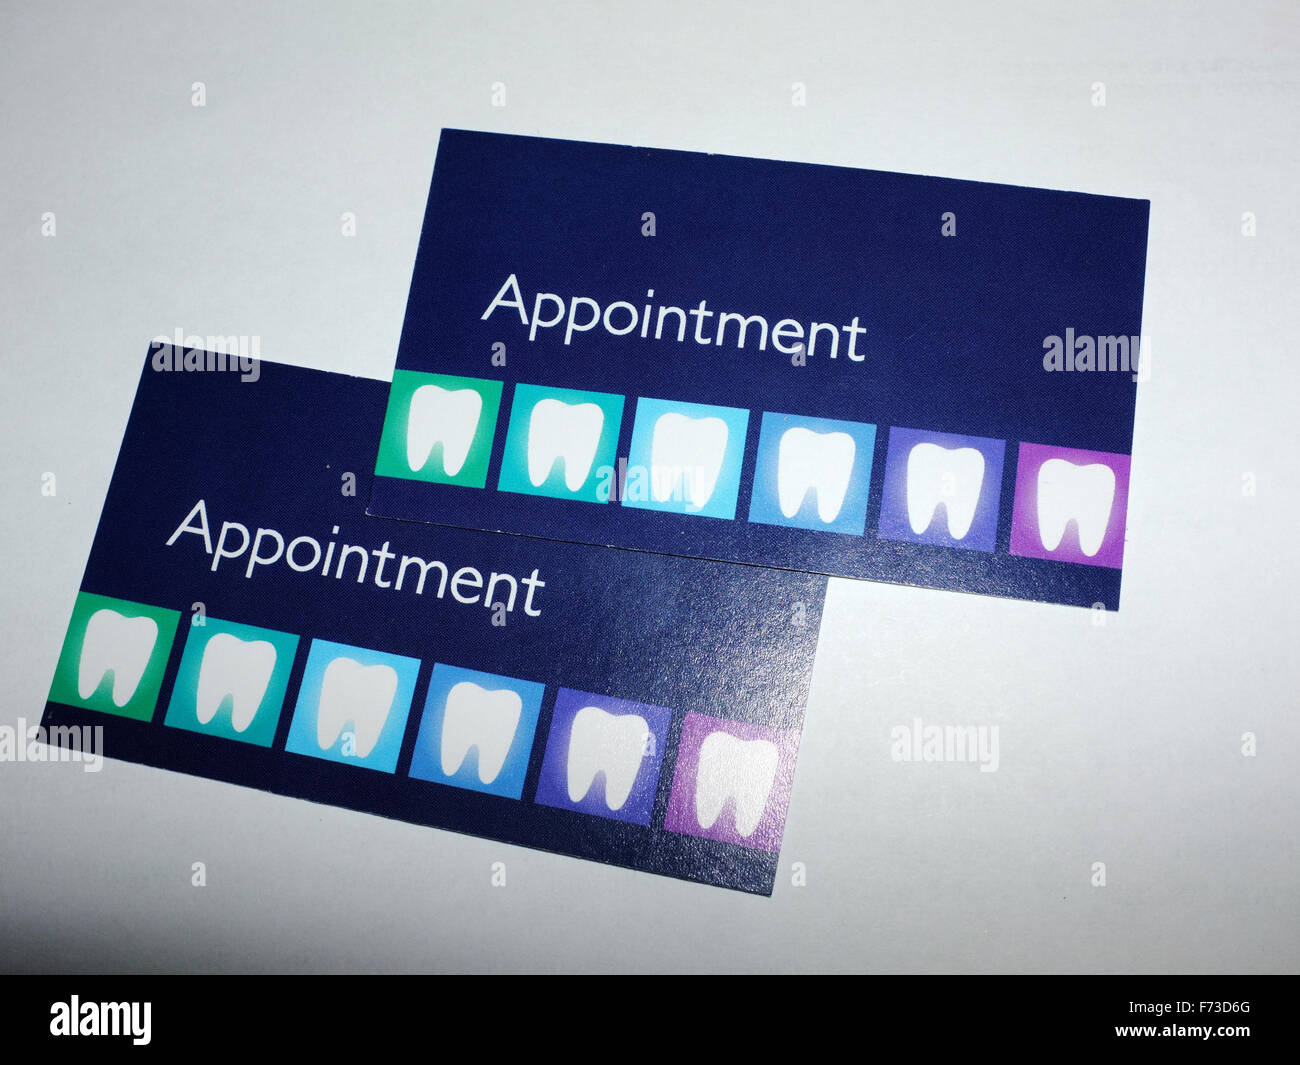 Two dentist appointments cards photographed against a white background. - Stock Image